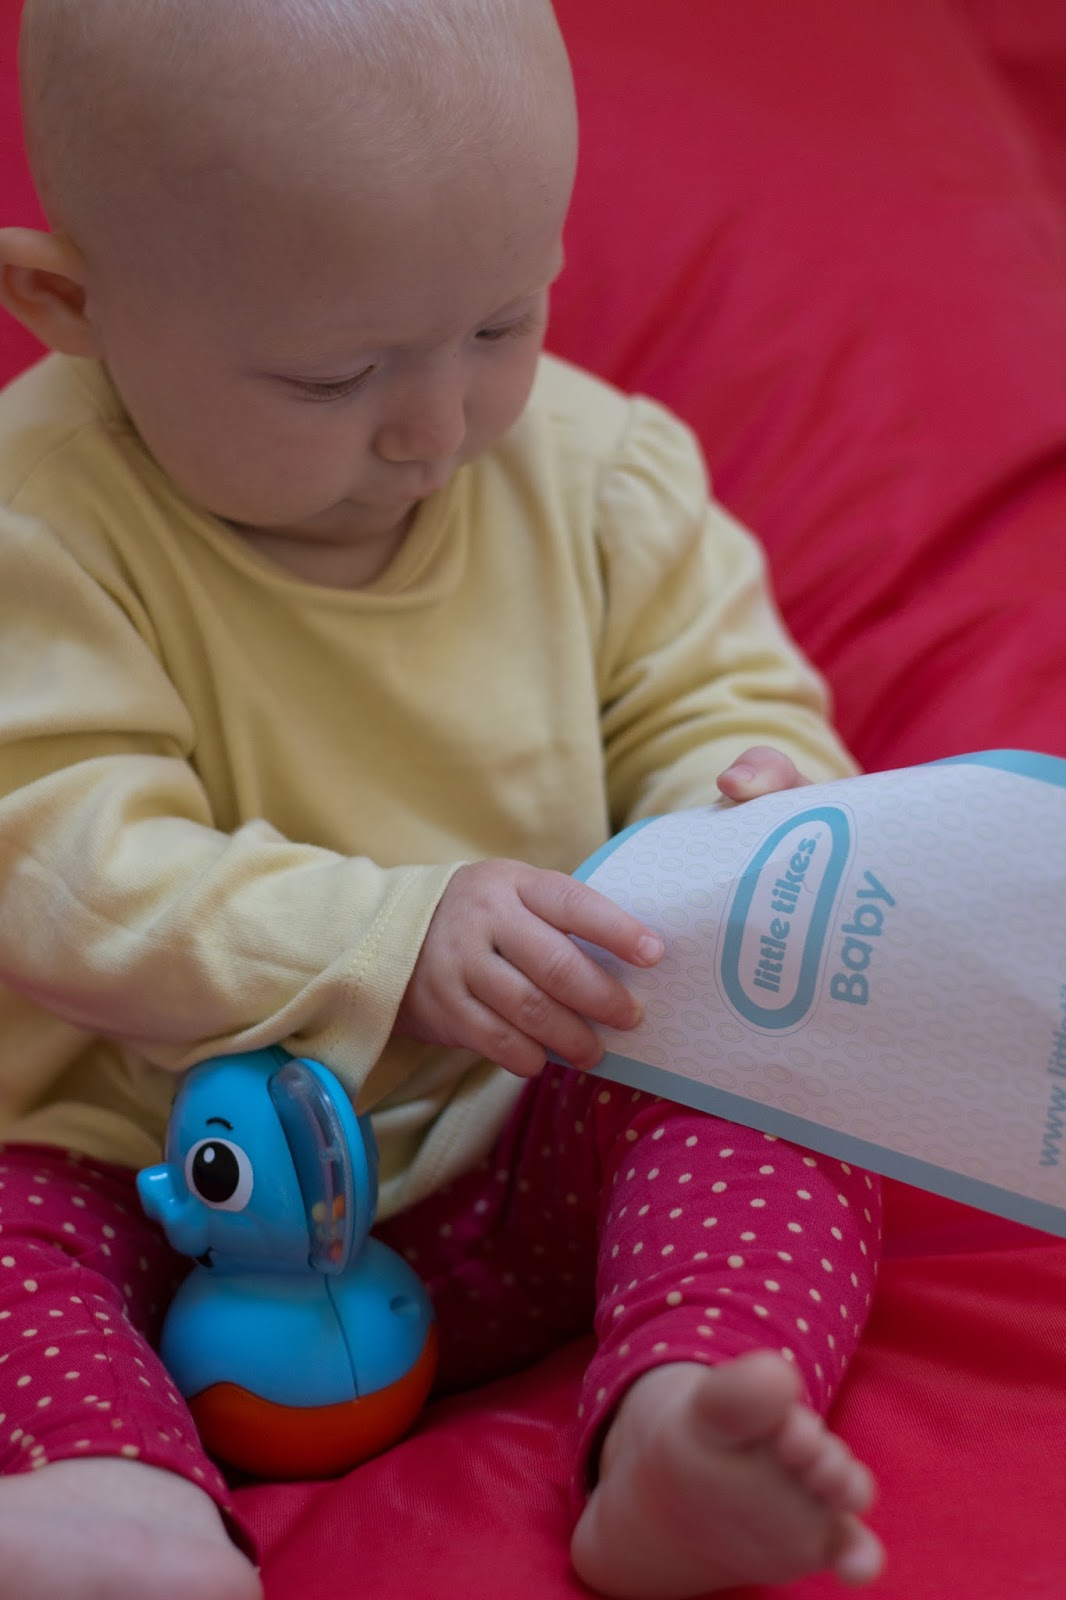 A baby on a big red bean bag holding a baby milestone card with an elephant rattle toy between her legs